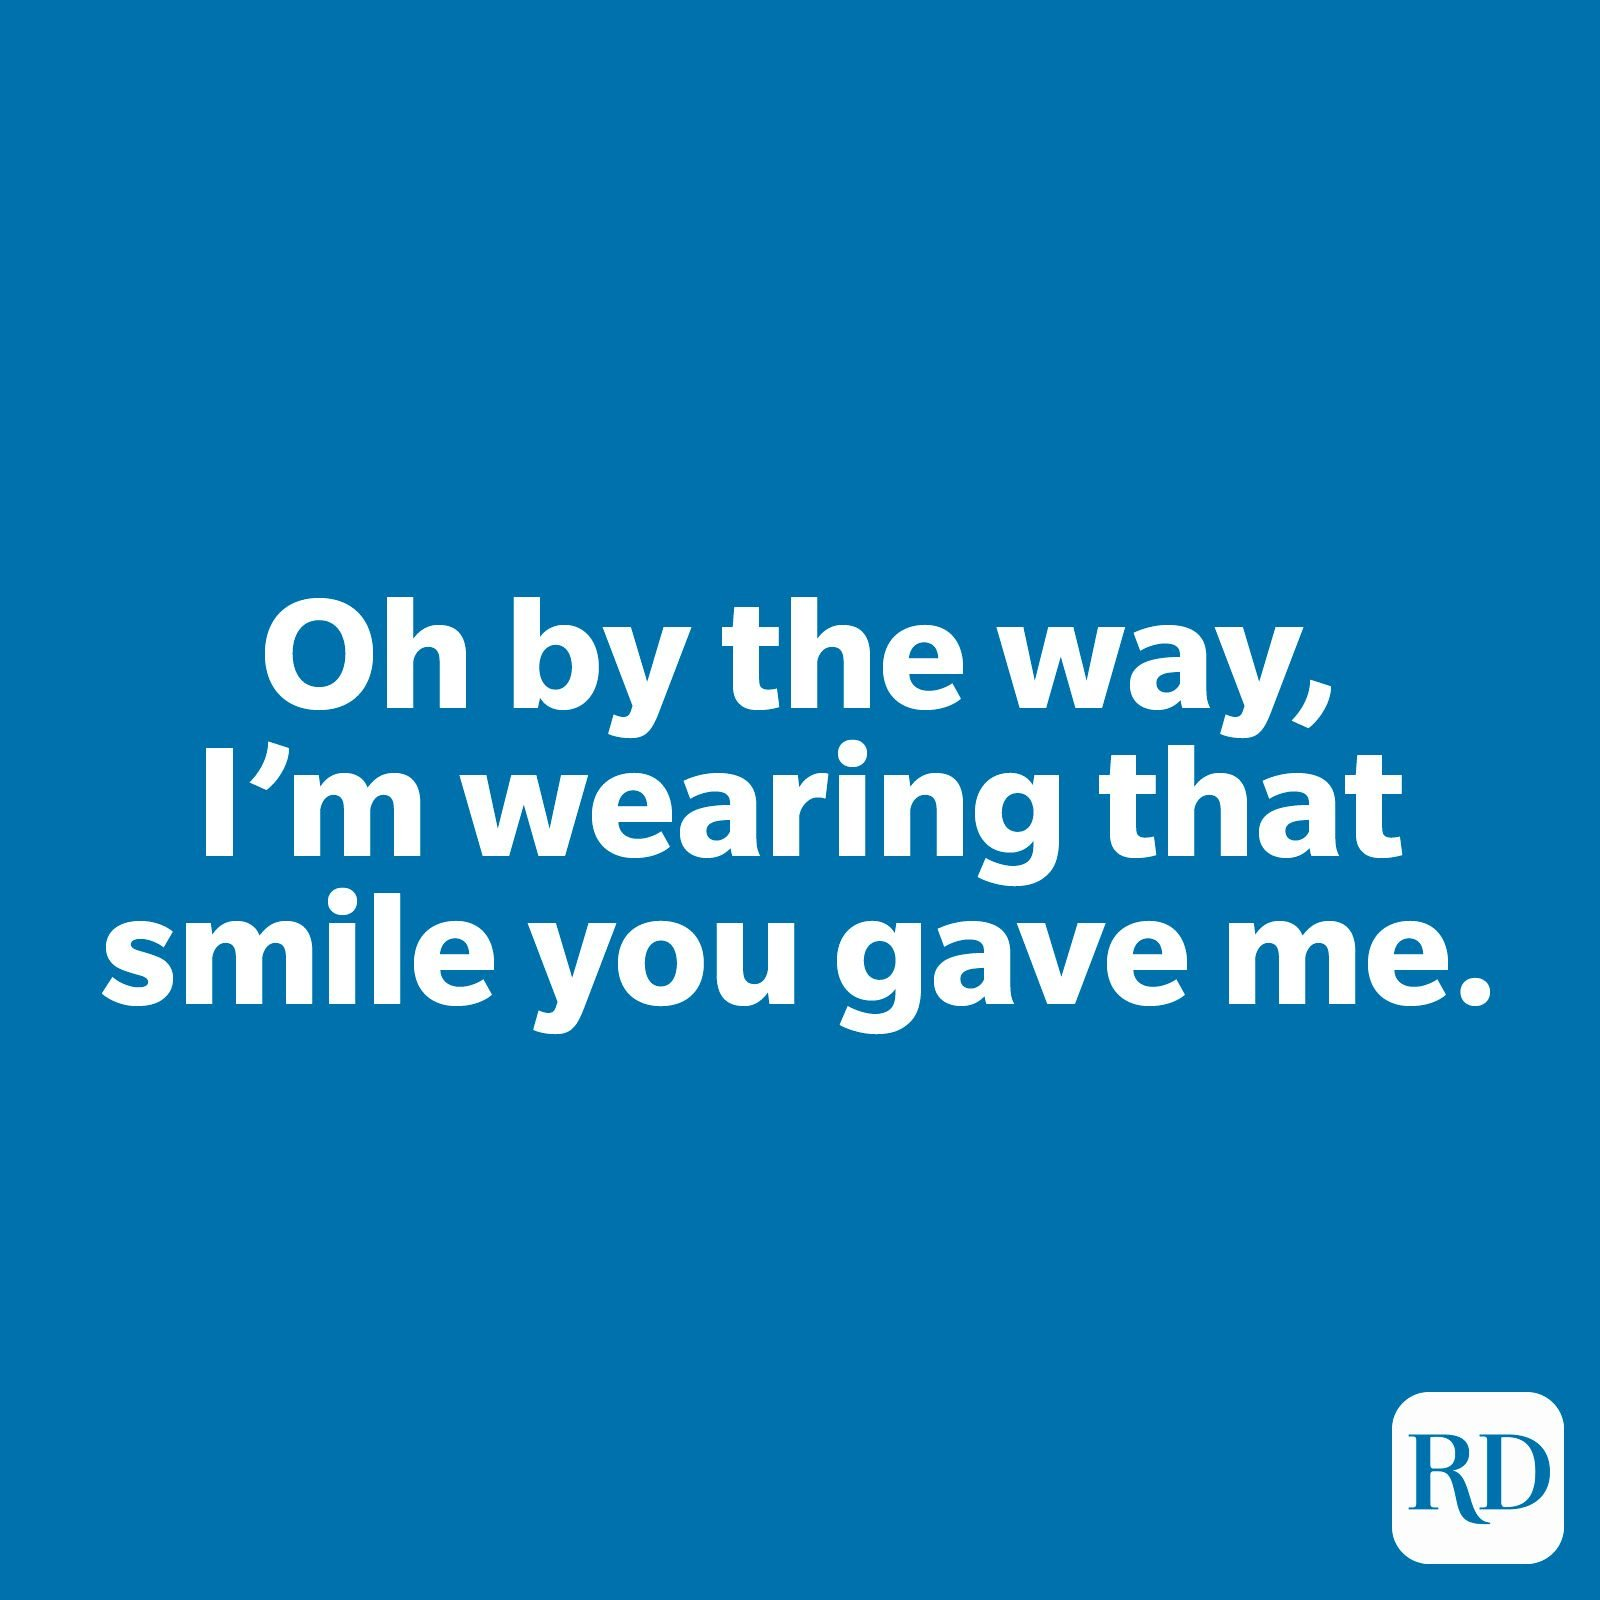 Oh by the way, I'm wearing that smile you gave me.